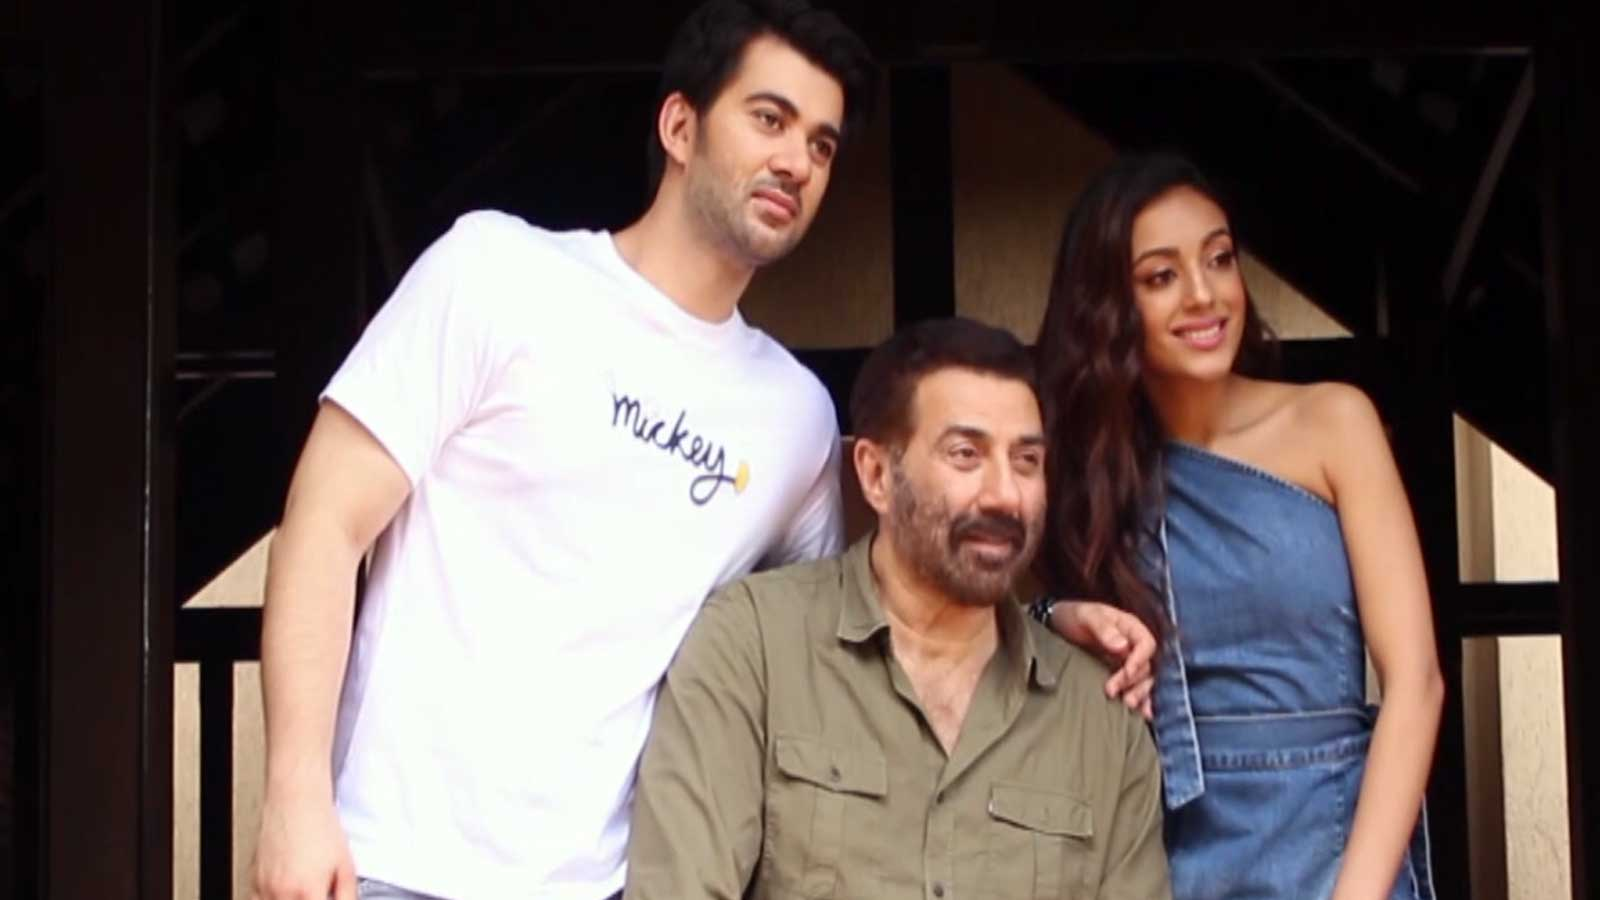 Dad Sunny Deol promotes son Karan Deol's movie in Mumbai